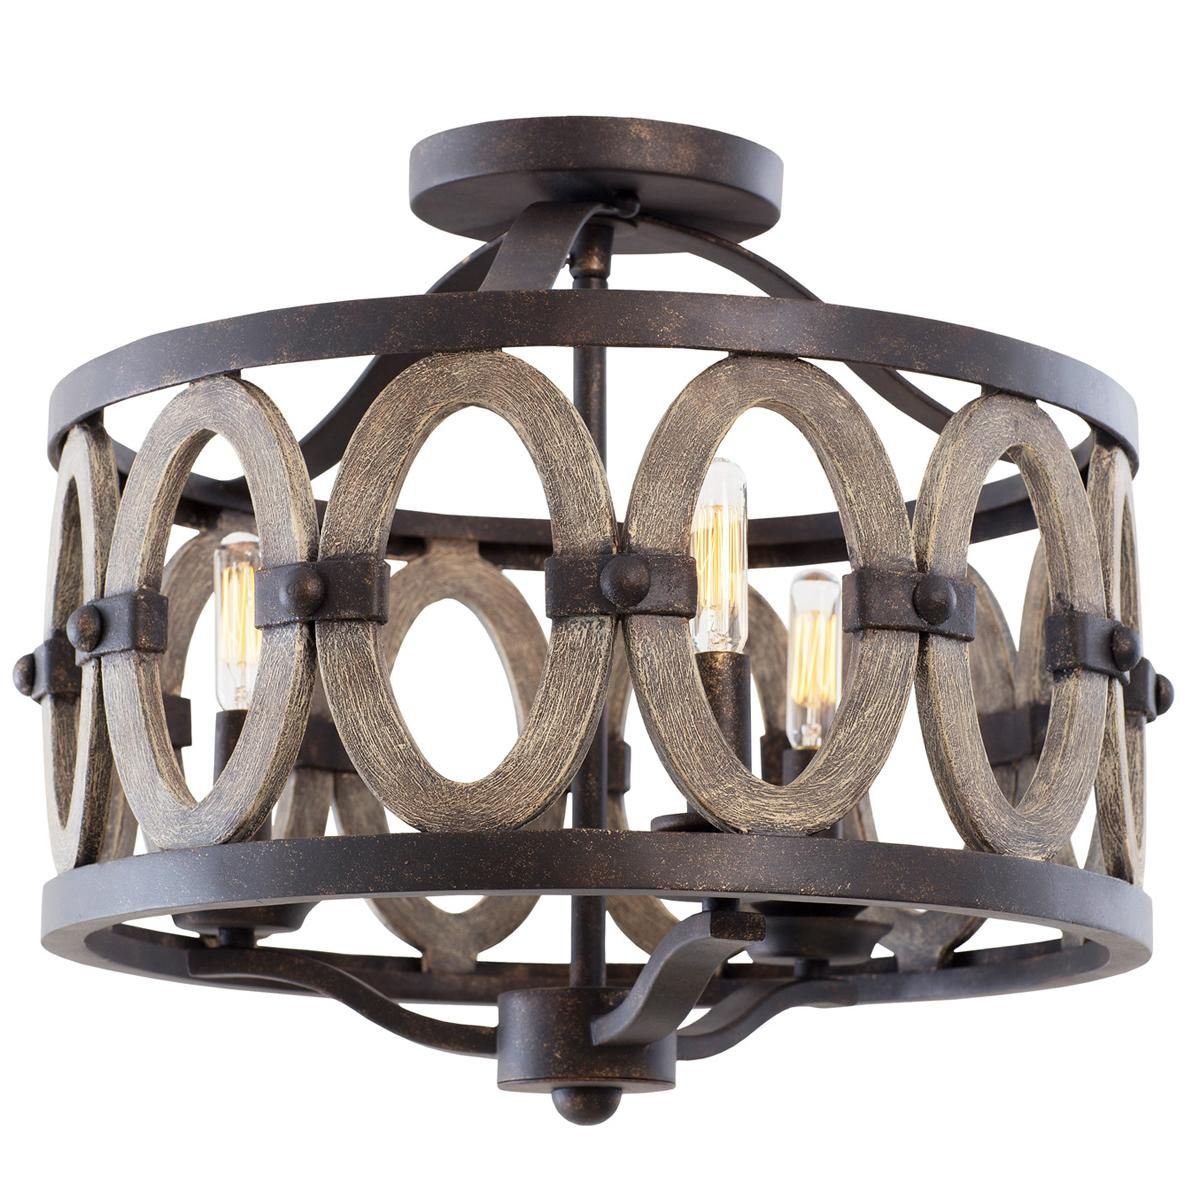 Where To Buy Ceiling Lights: Driftwood Entwined Ovals Ceiling Light